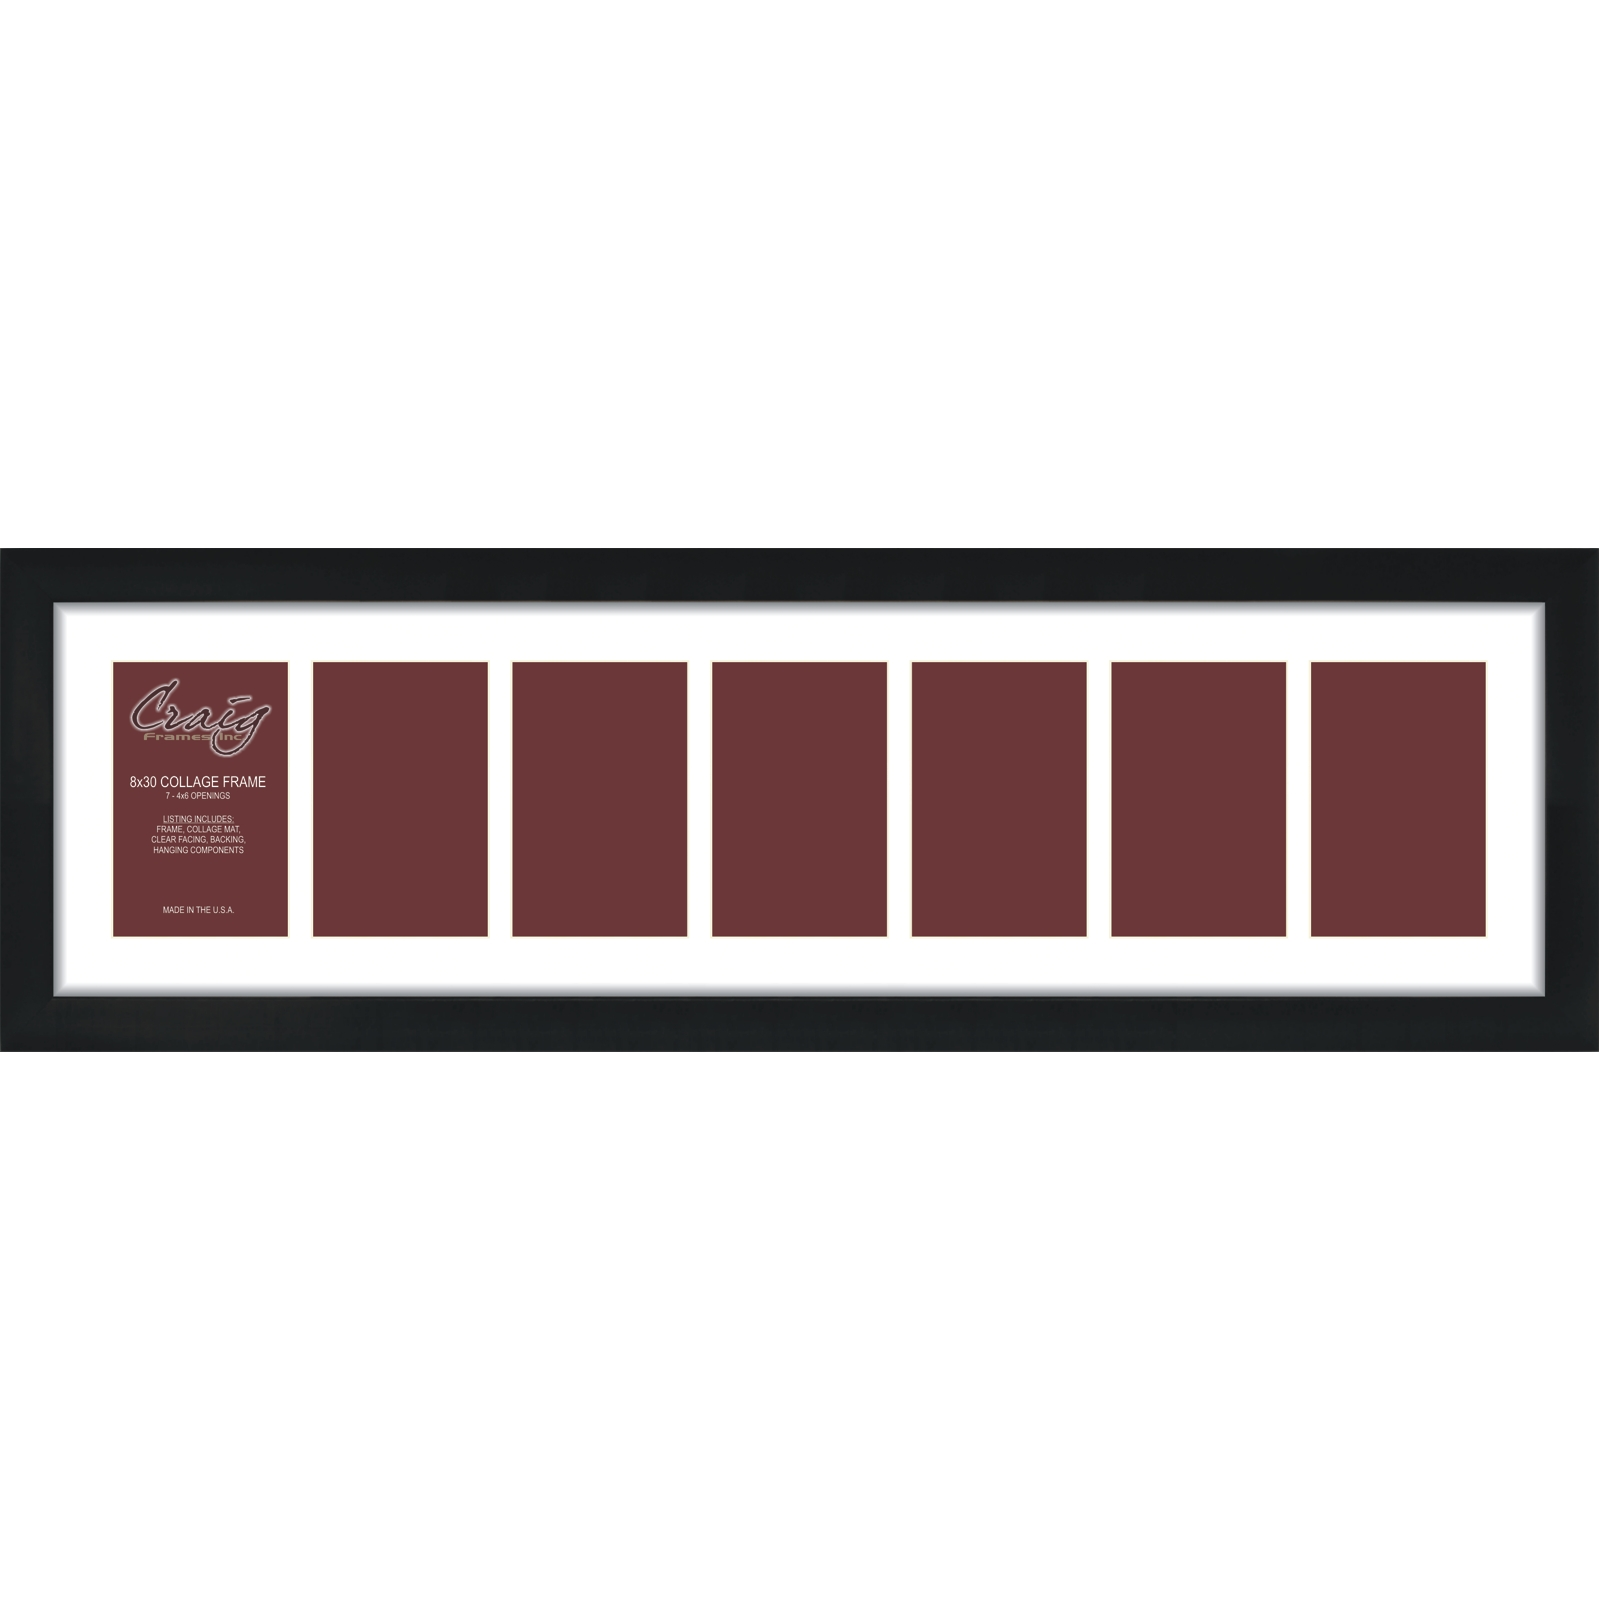 Craig Frames 1WB3BK 8x30, 7 Photo Collage Frame, 7 4x6 Openings, 1 ...